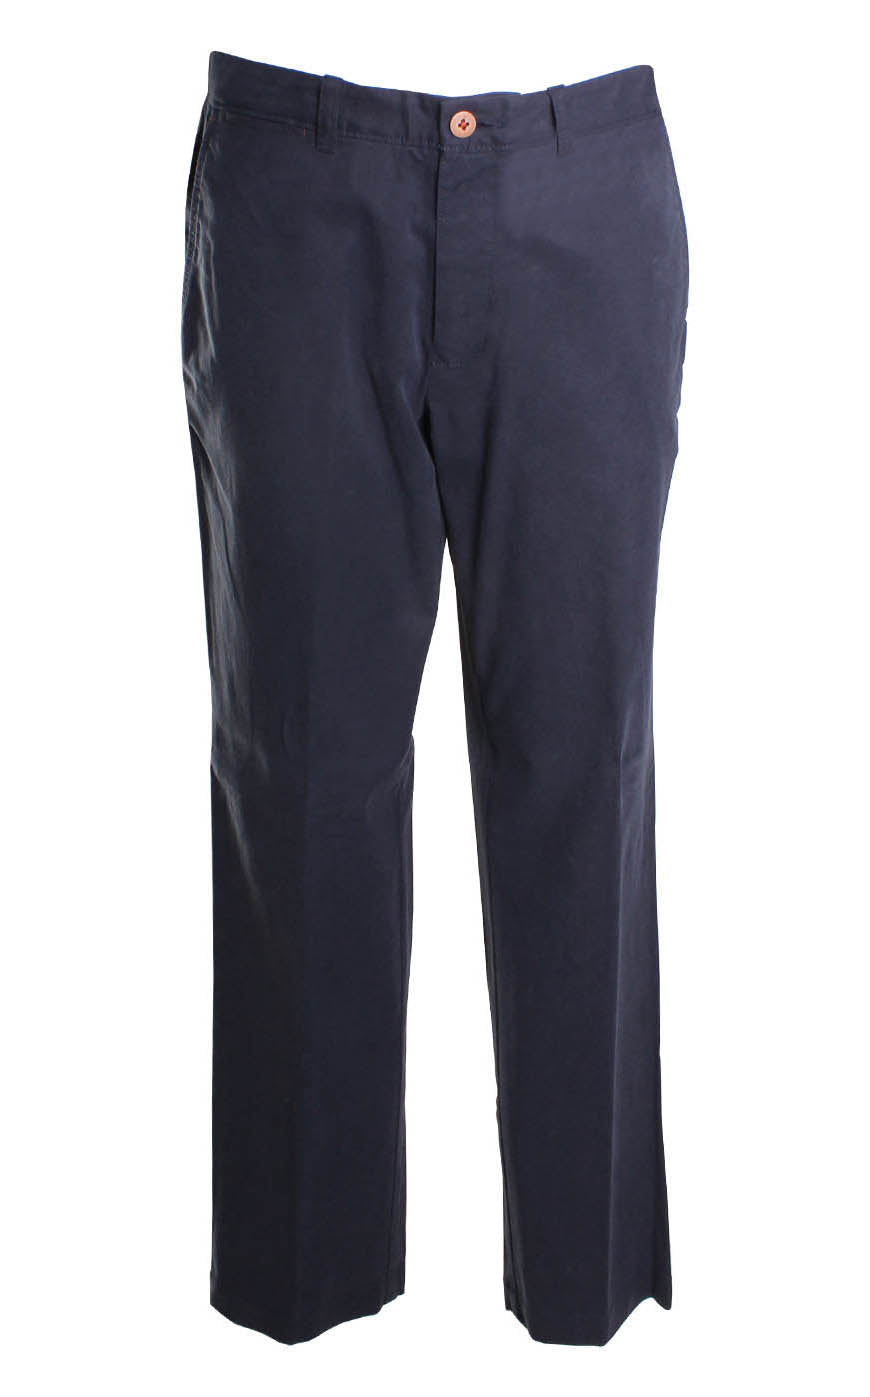 Tommy Bahama Bryant Flat Front Pant in Ink